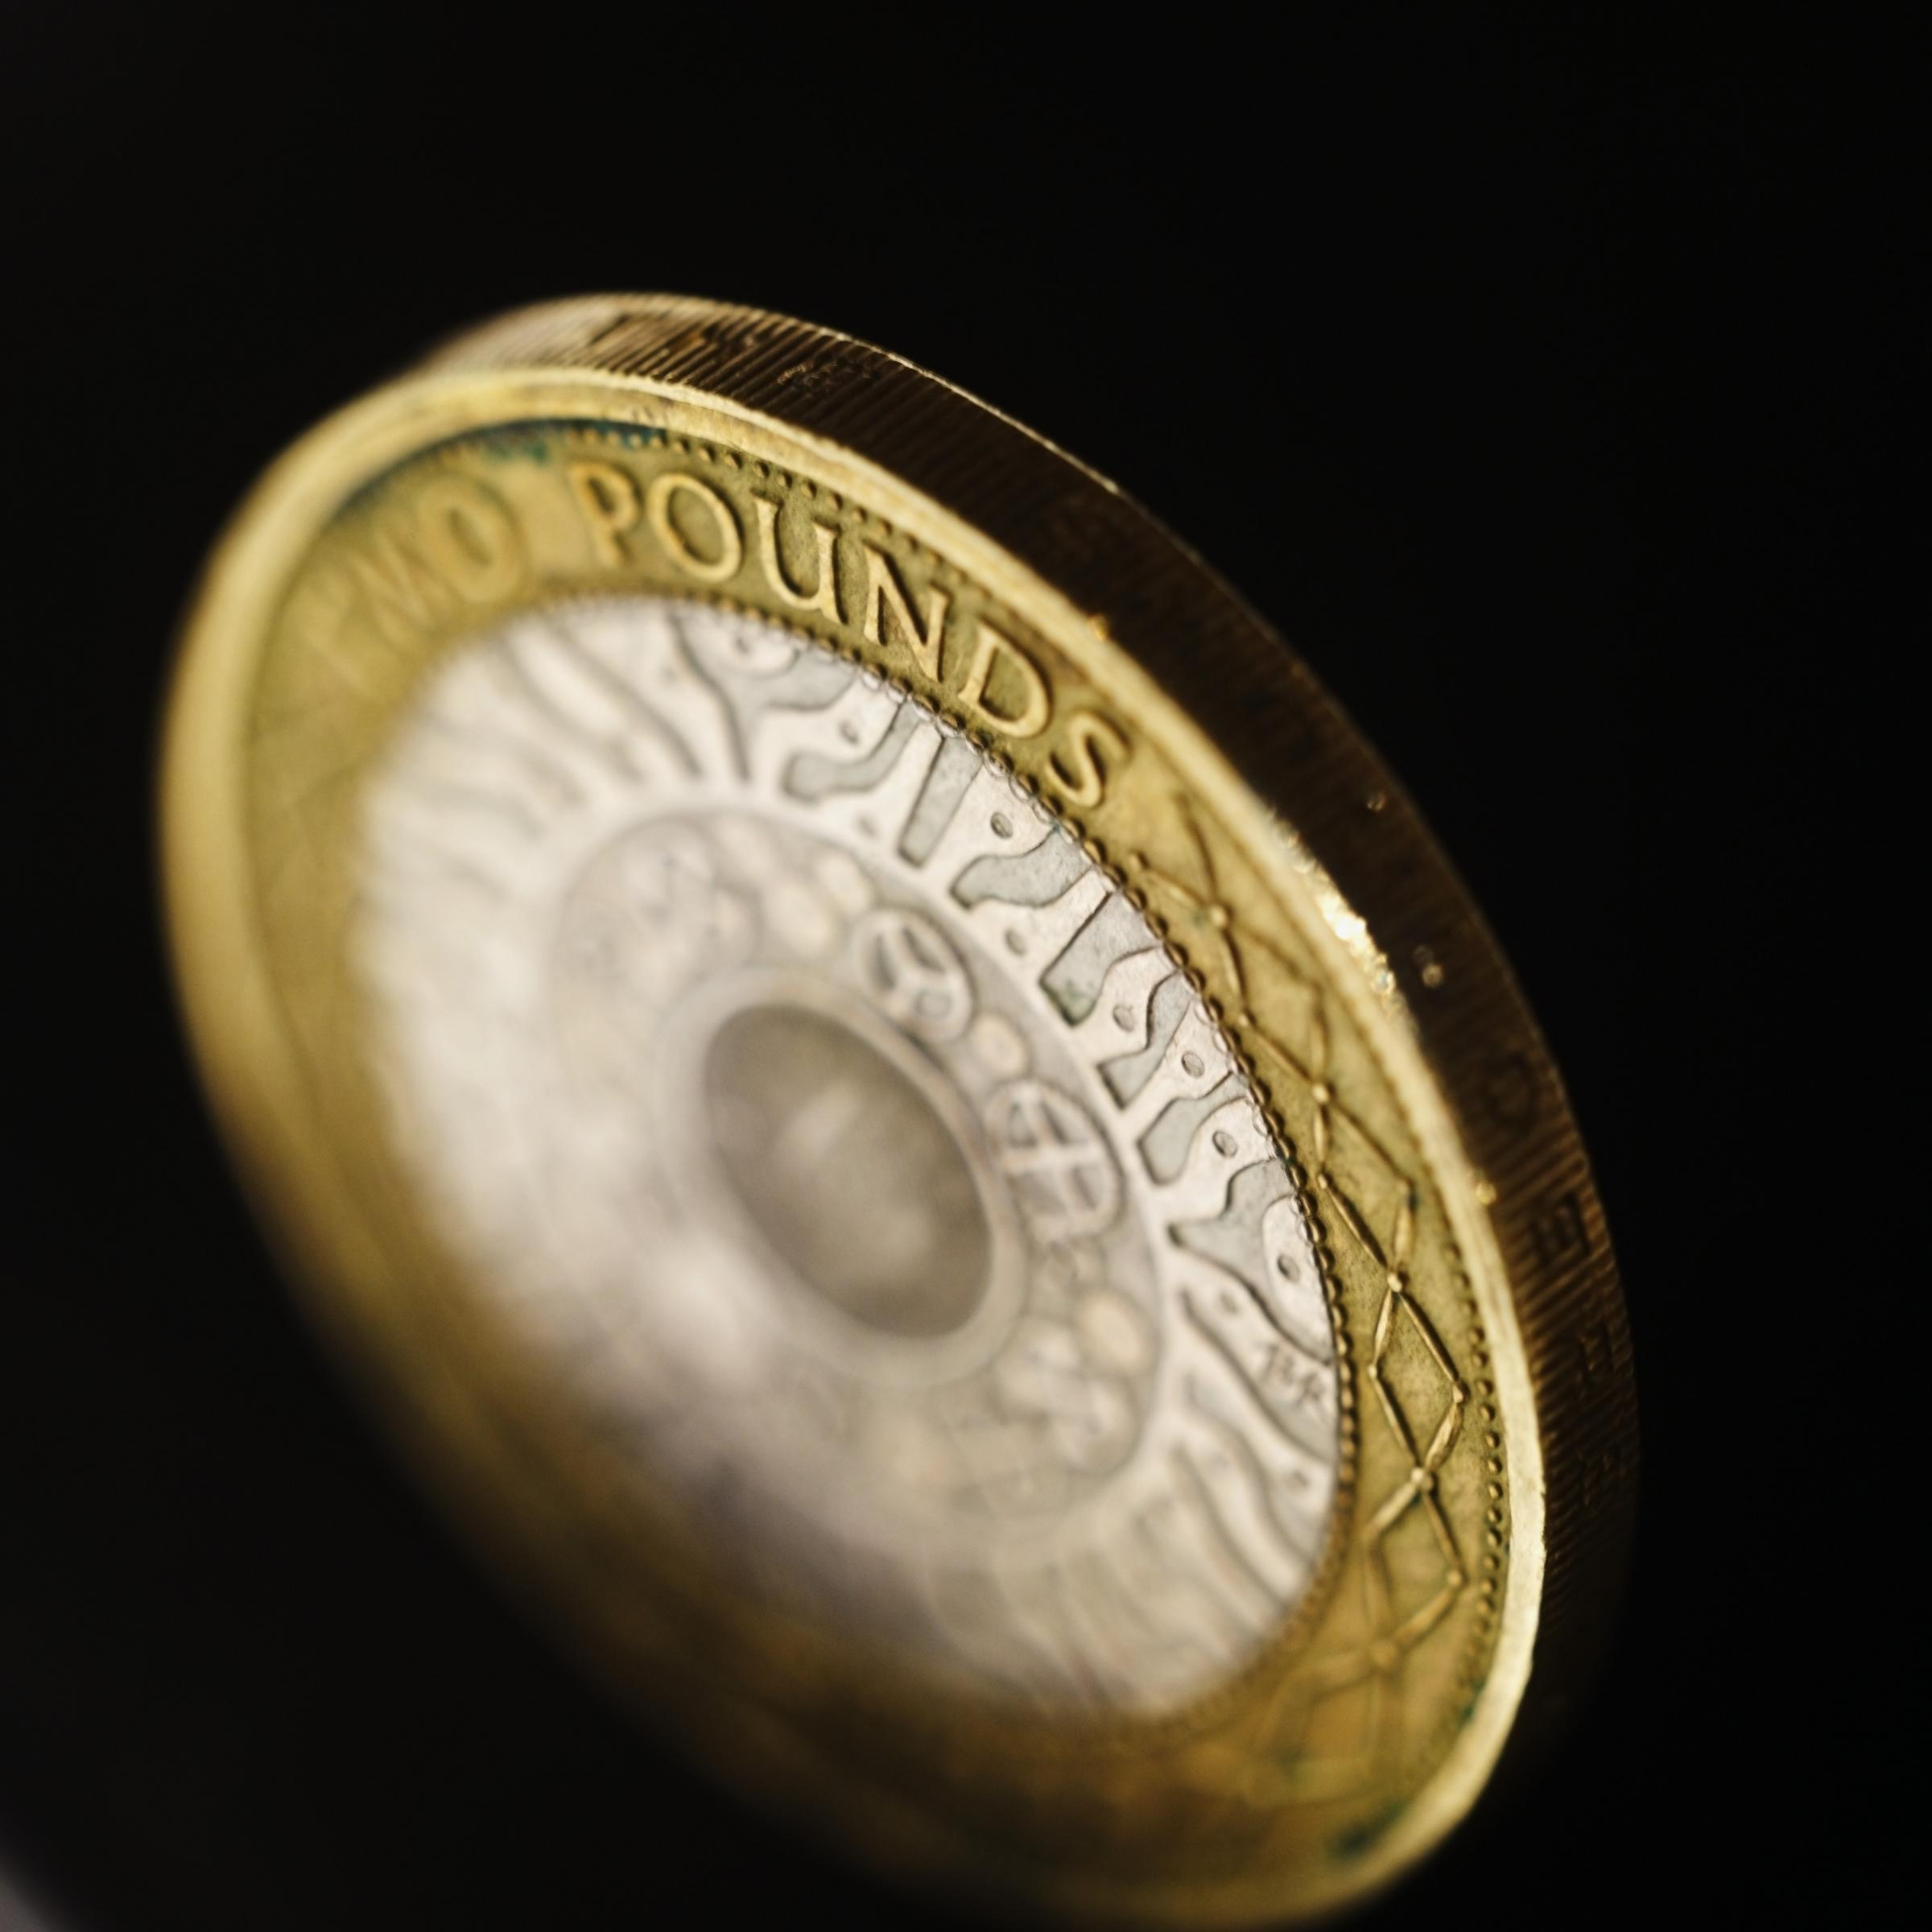 Close-up of a two pound coin